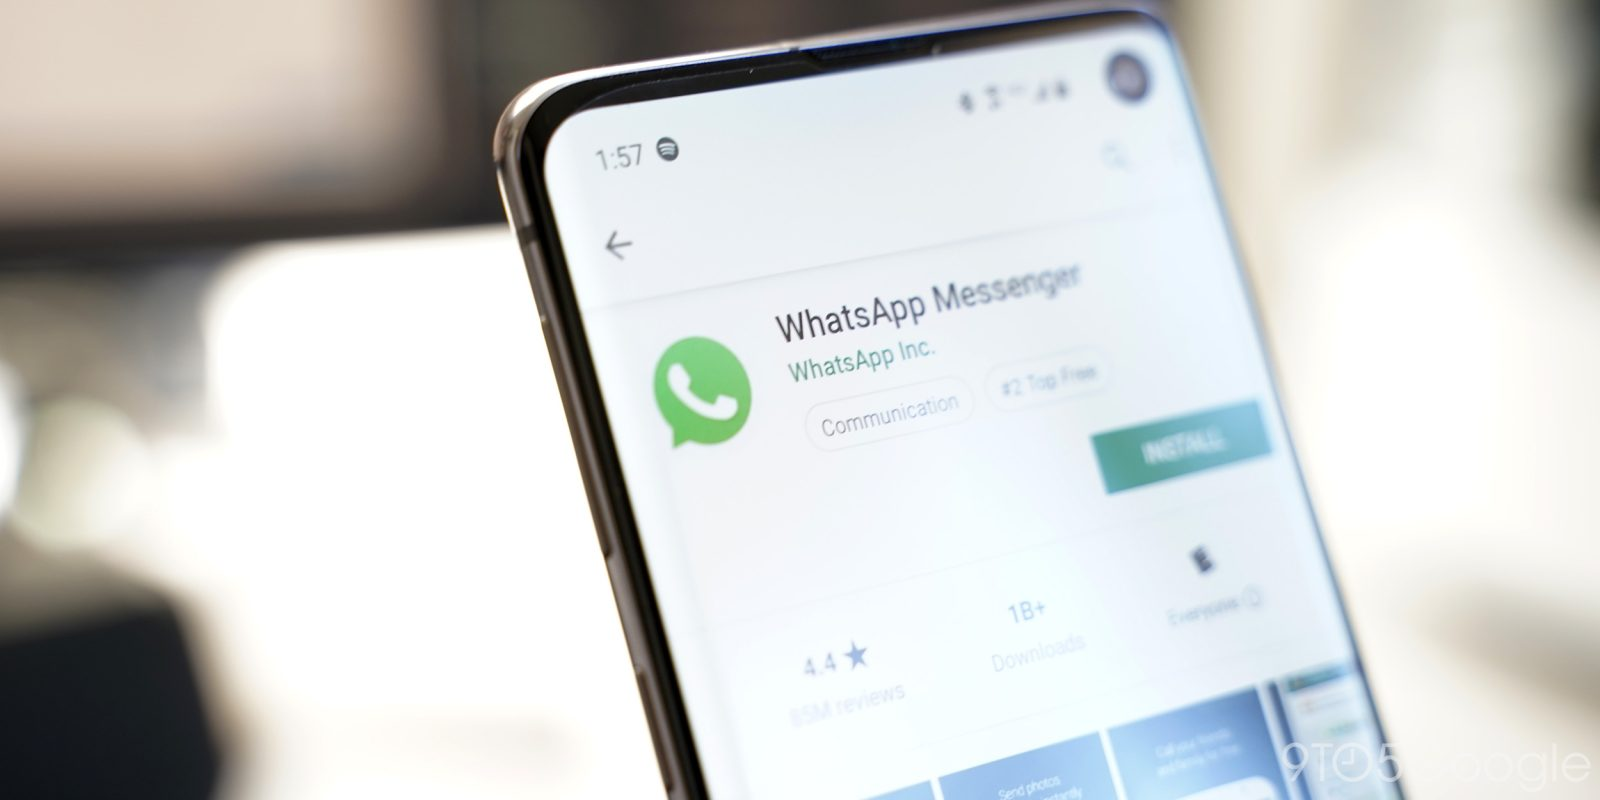 WhatsApp is only the second non-Google Android app to hit 5 billion installs